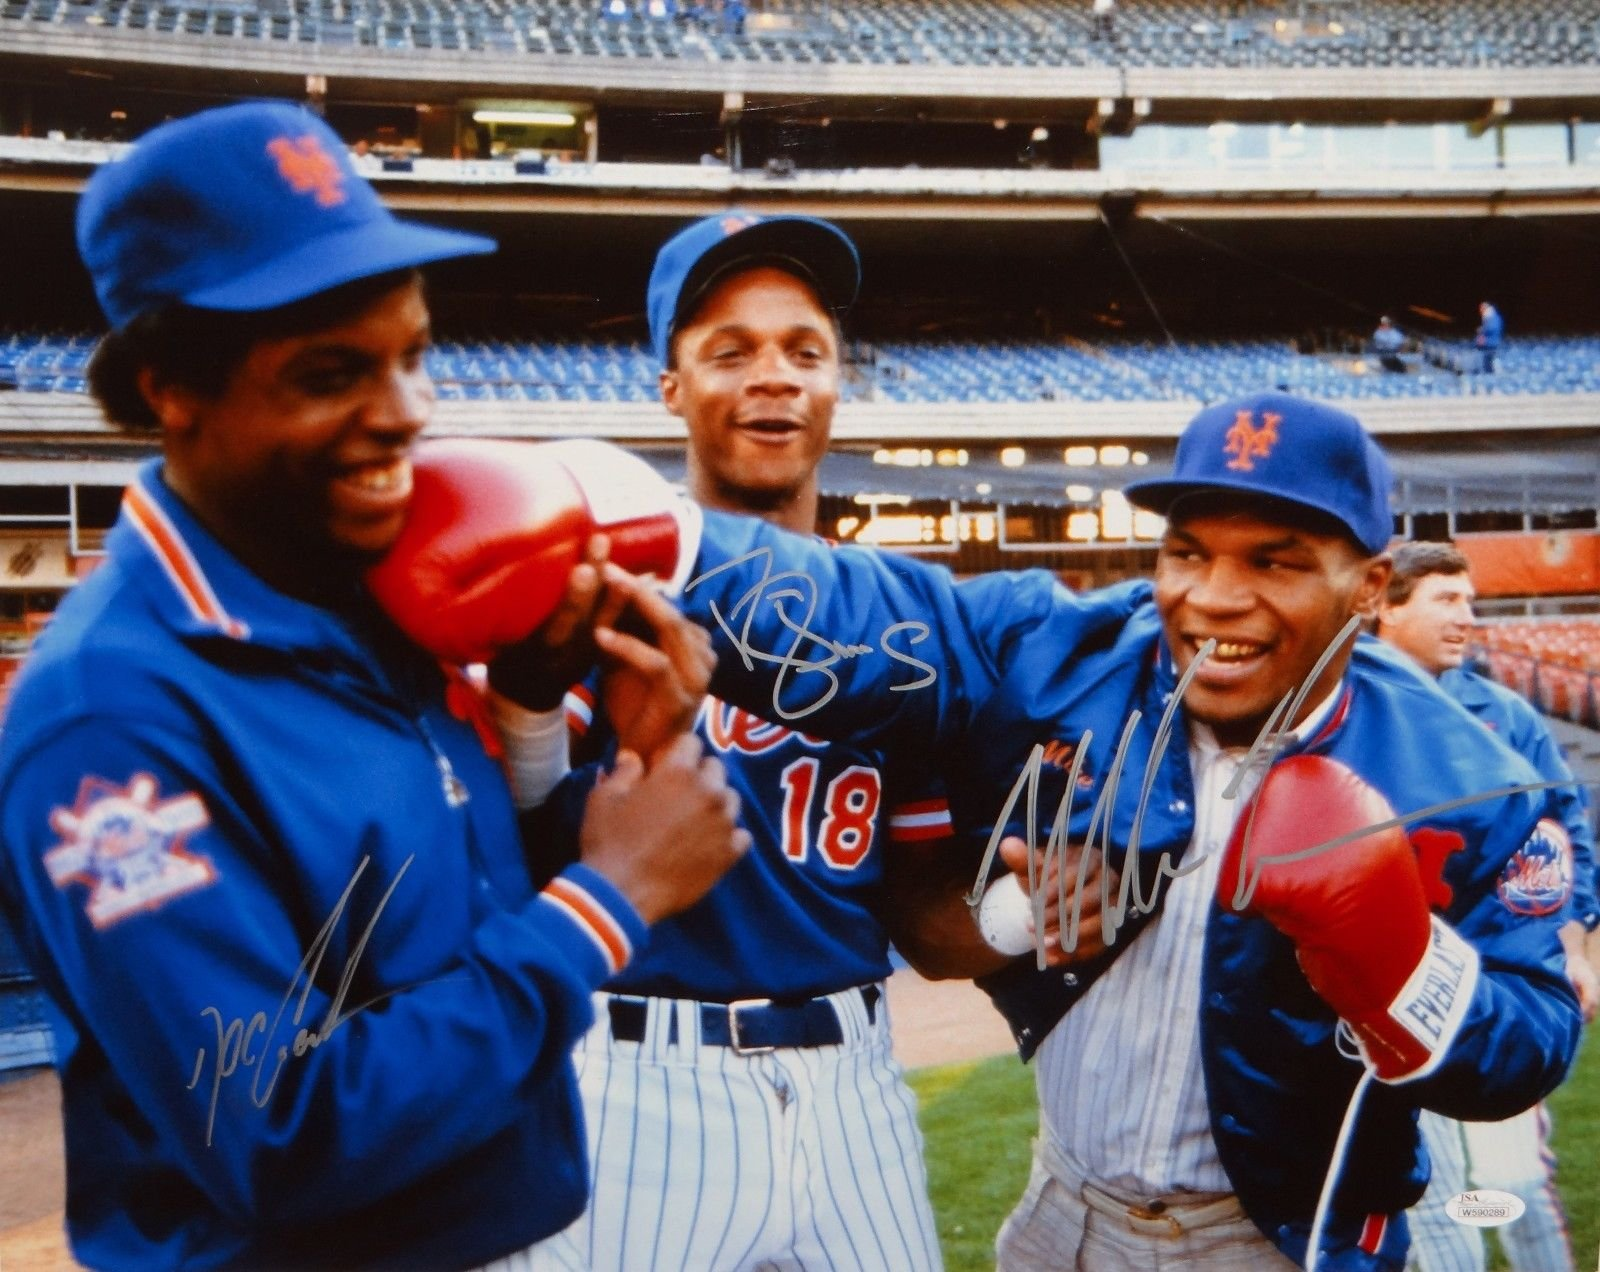 Mike Tyson Doc Gooden Darryl Strawberry Autographed 16x20 Color Photo JSA W Auth